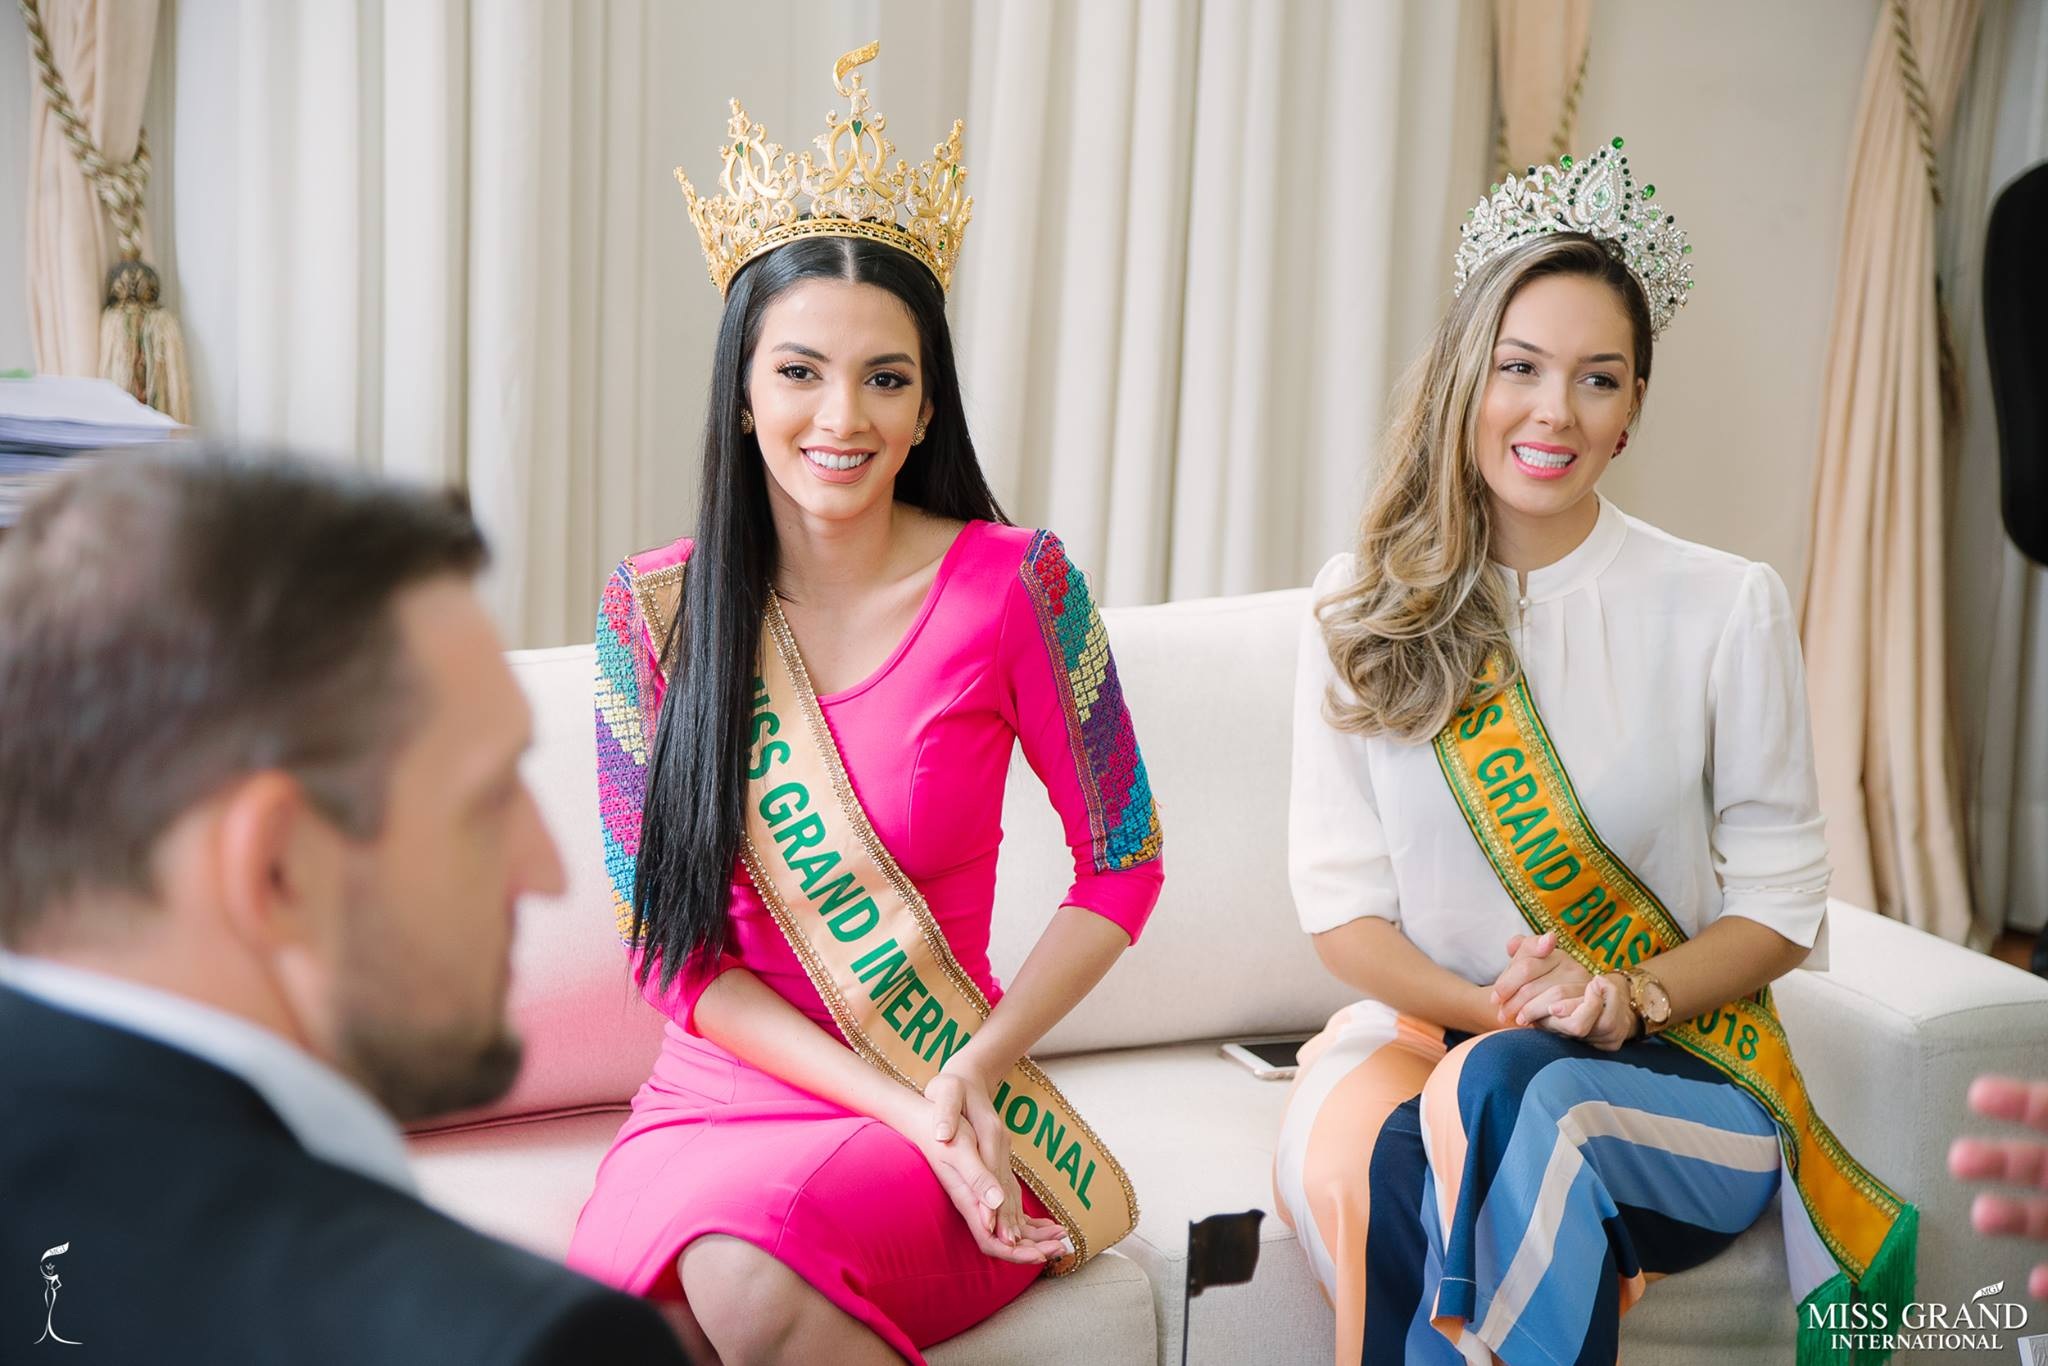 miss grand international 2018 visitando brasil para assistir a final de miss grand brasil 2019. - Página 2 Ypwutzc7